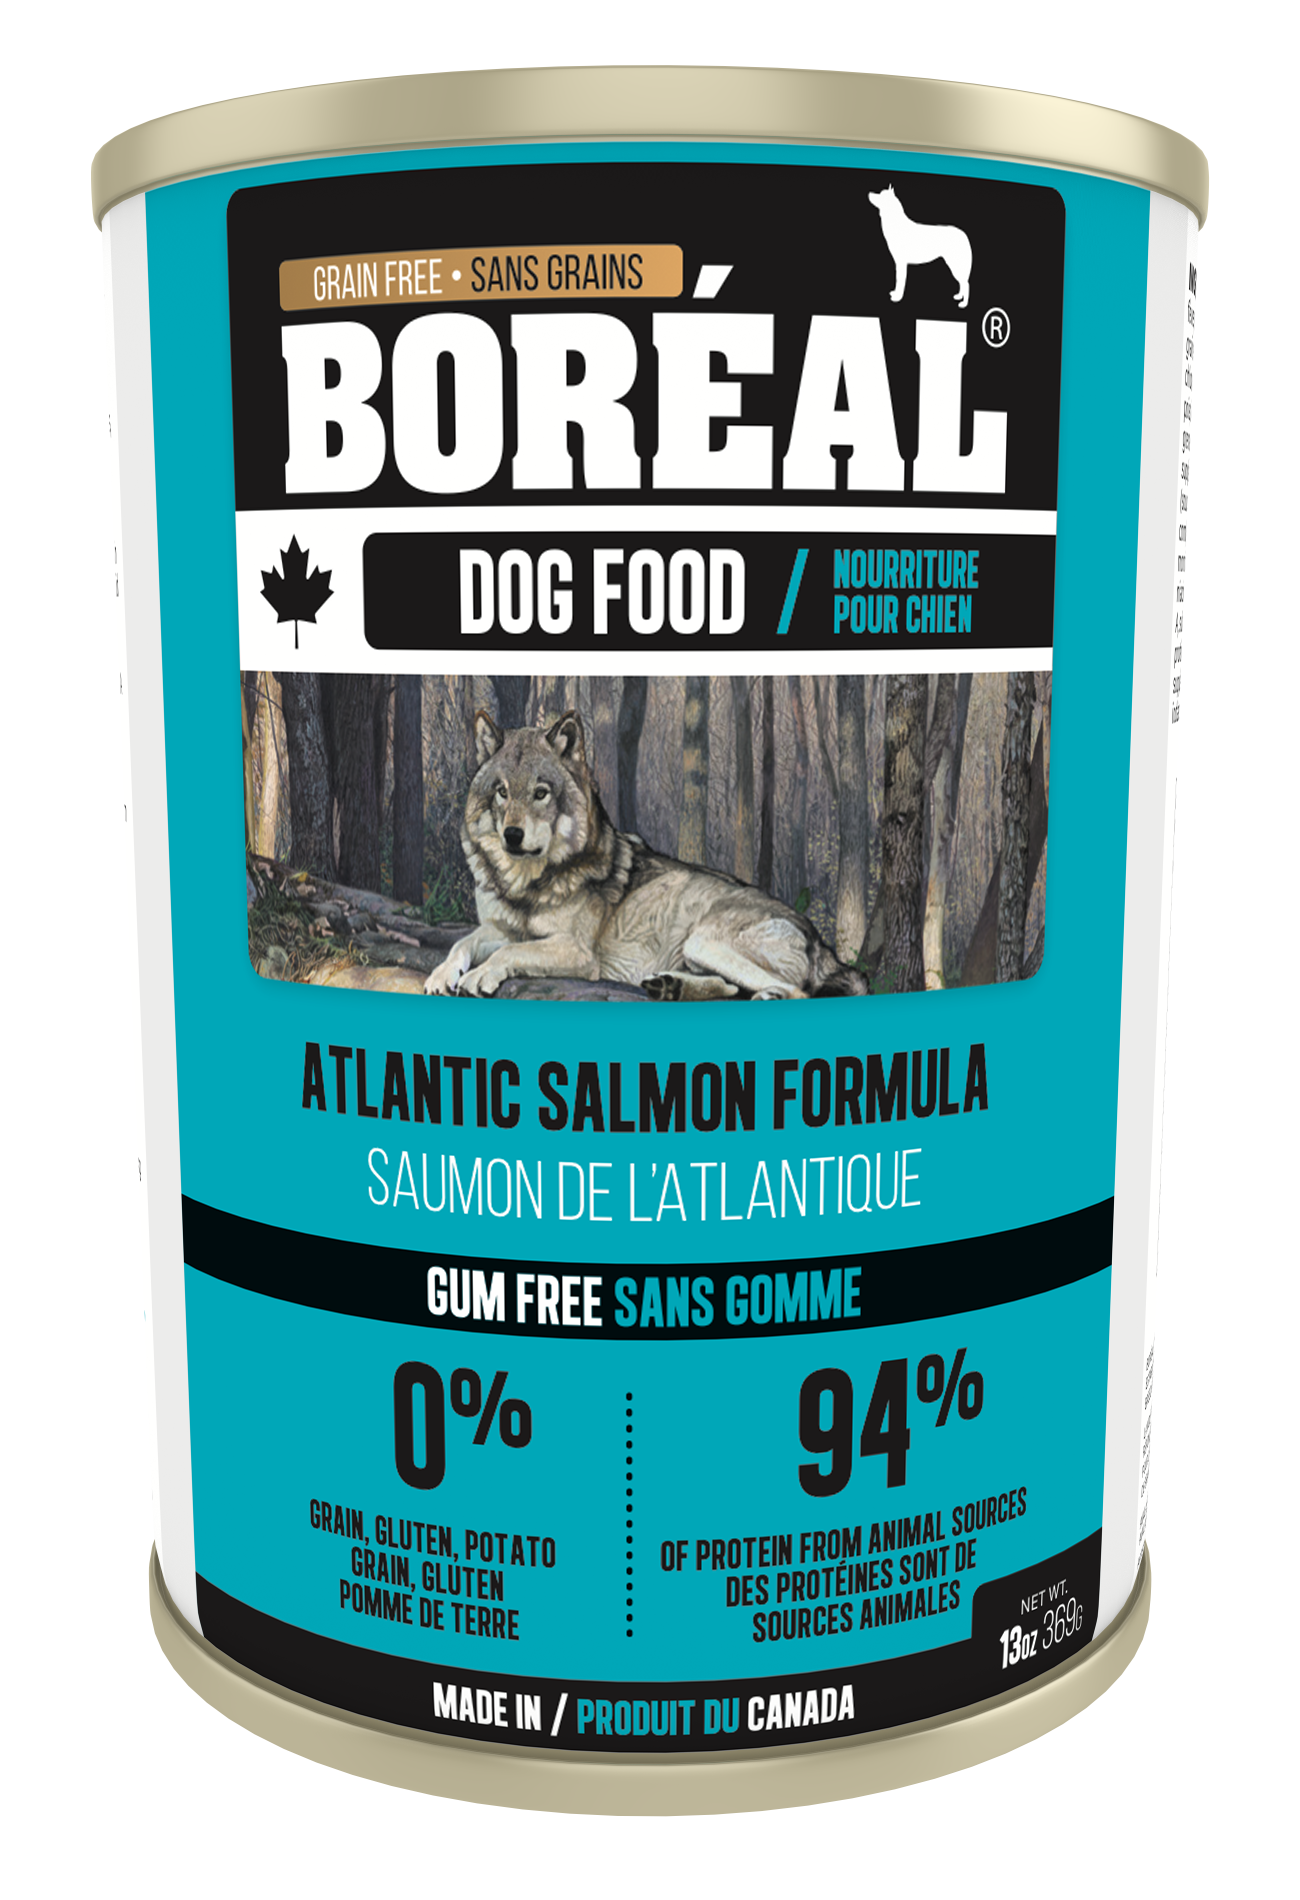 Boreal Grain-Free Canadian Atlantic Salmon Formula Canned Dog Food, 369g can